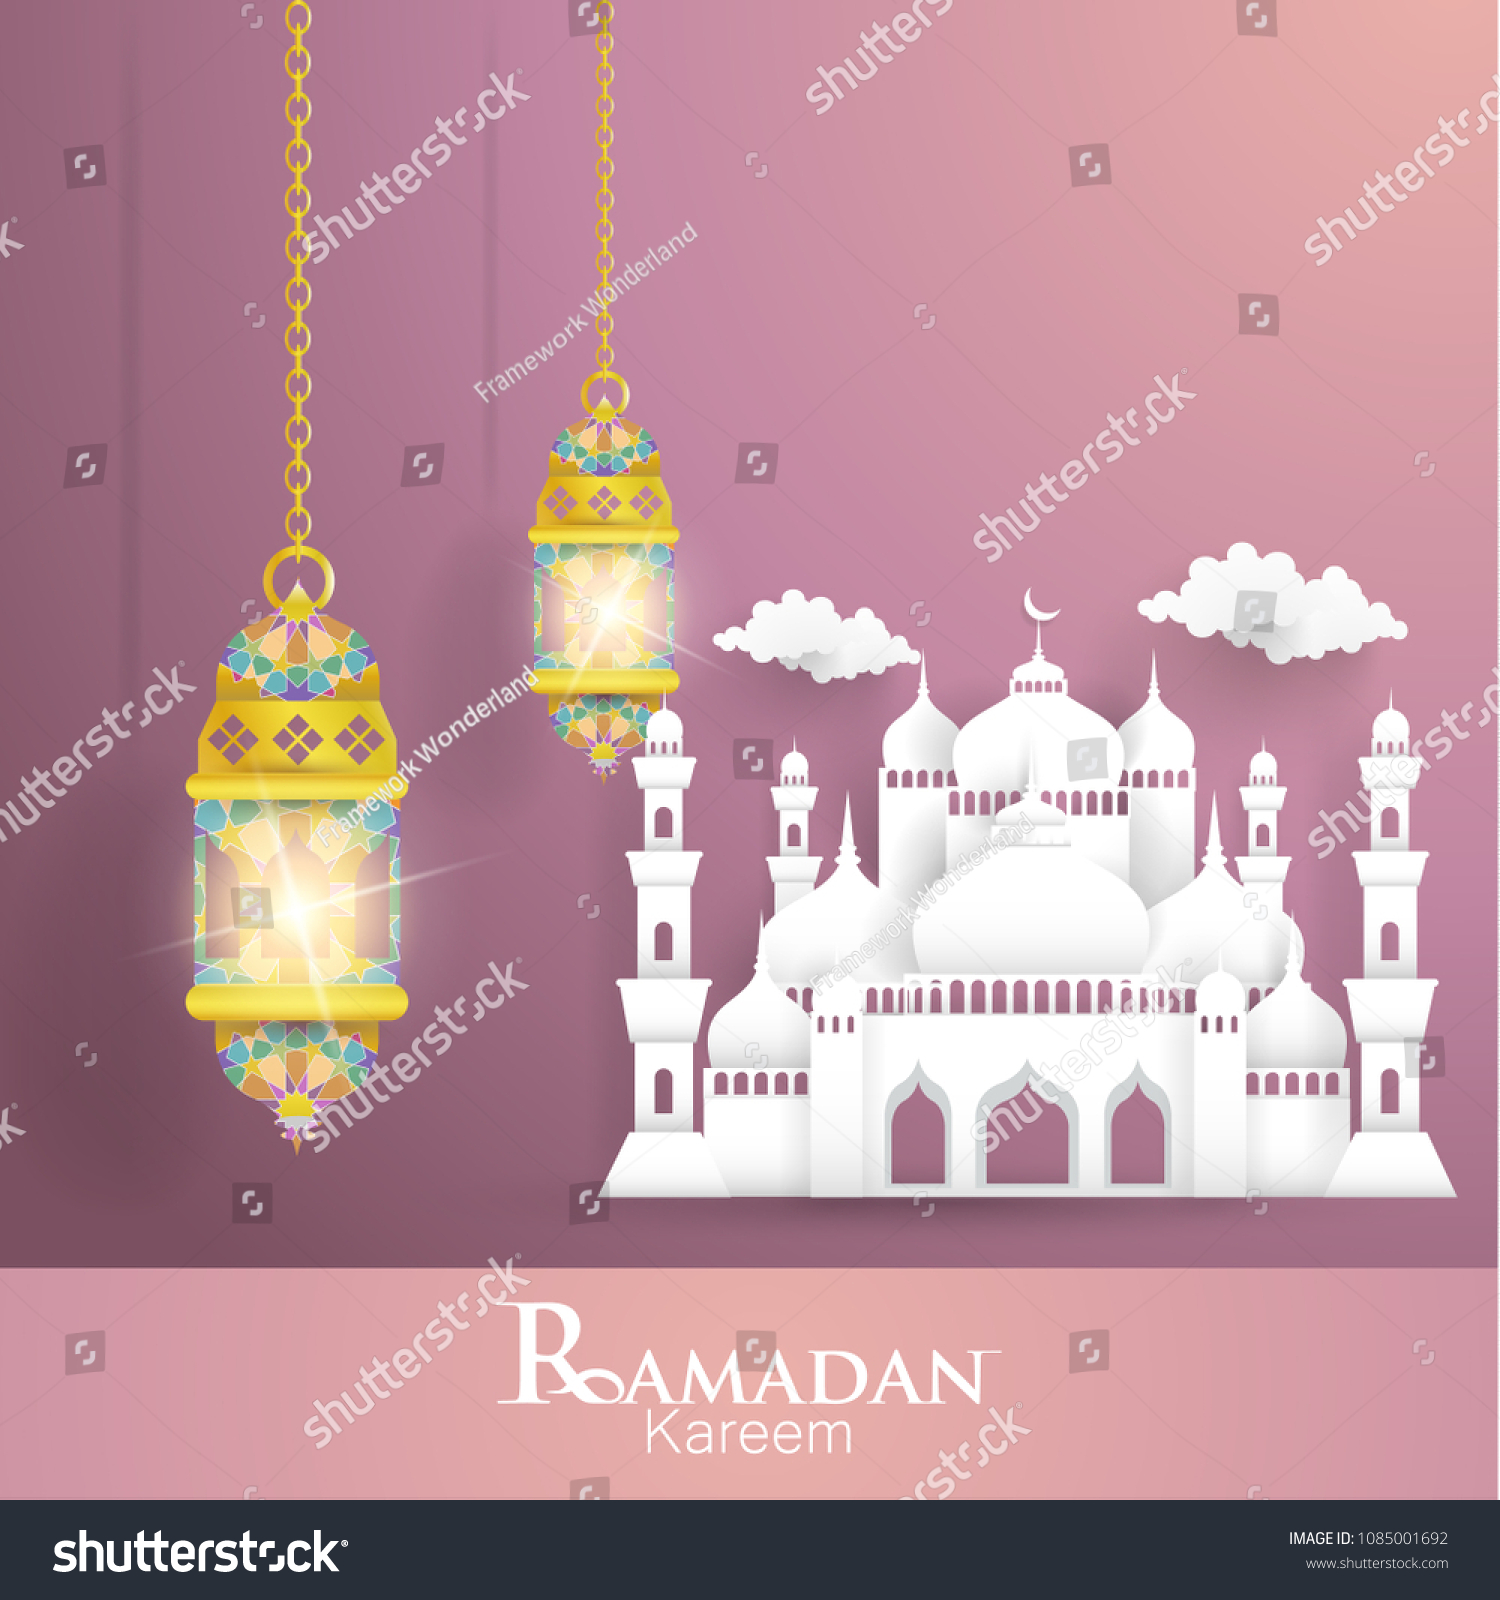 Ramadan Kareem Illustrations Lanterns Mosques Greeting Stock Vector